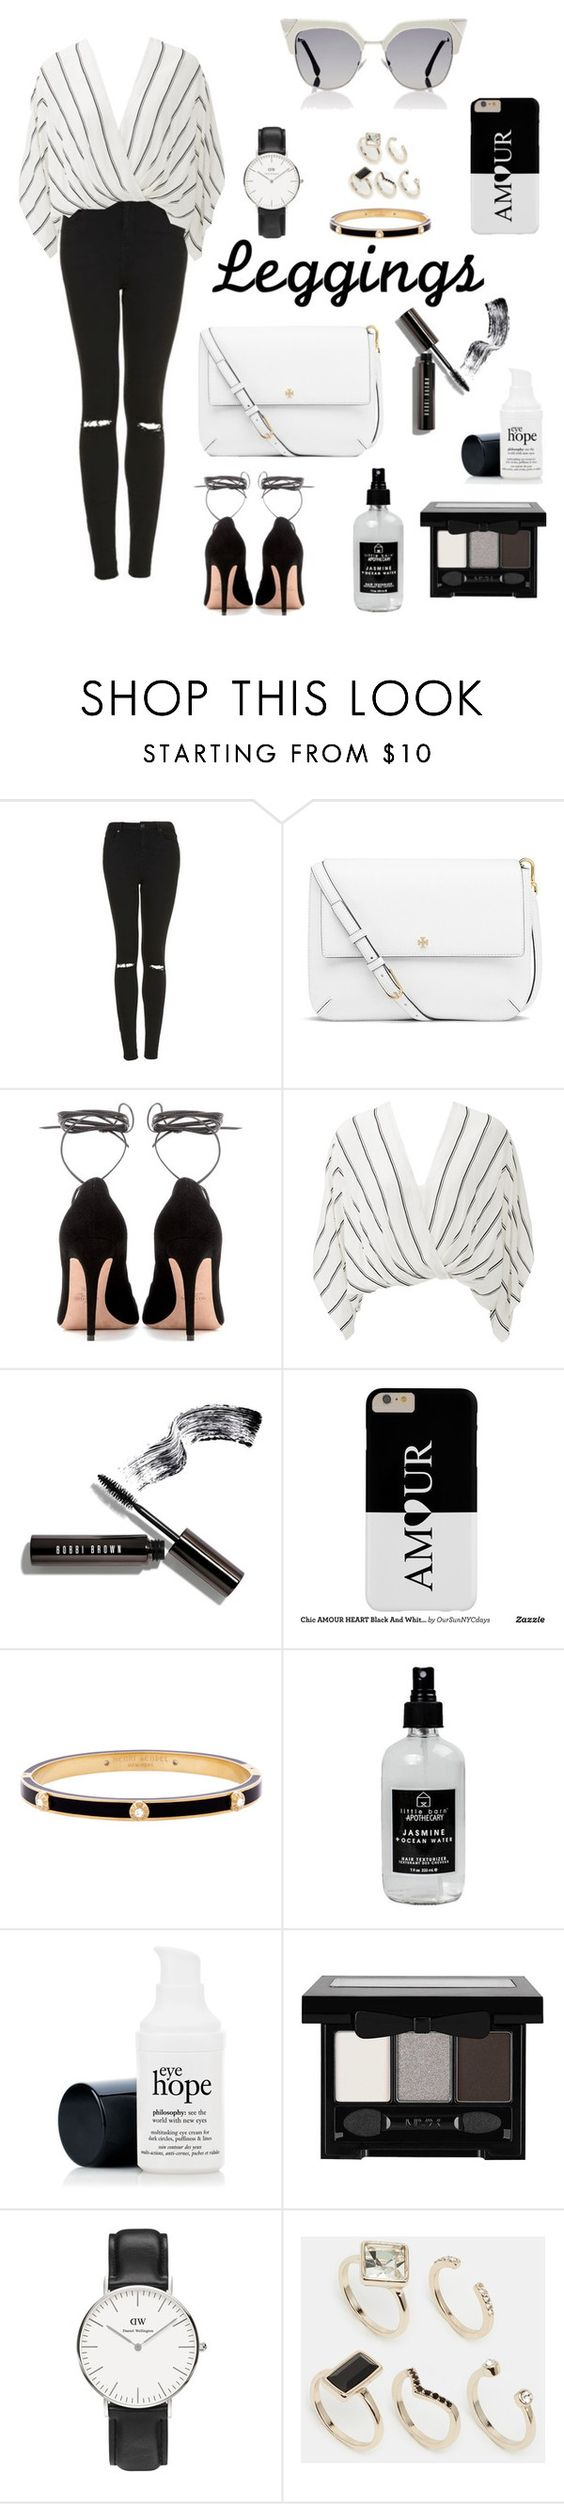 """""""#18"""" by melissious on Polyvore featuring Topshop, Tory Burch, Valentino, Free People, Bobbi Brown Cosmetics, Henri Bendel, Little Barn Apothecary, NYX, Daniel Wellington and Oasis"""